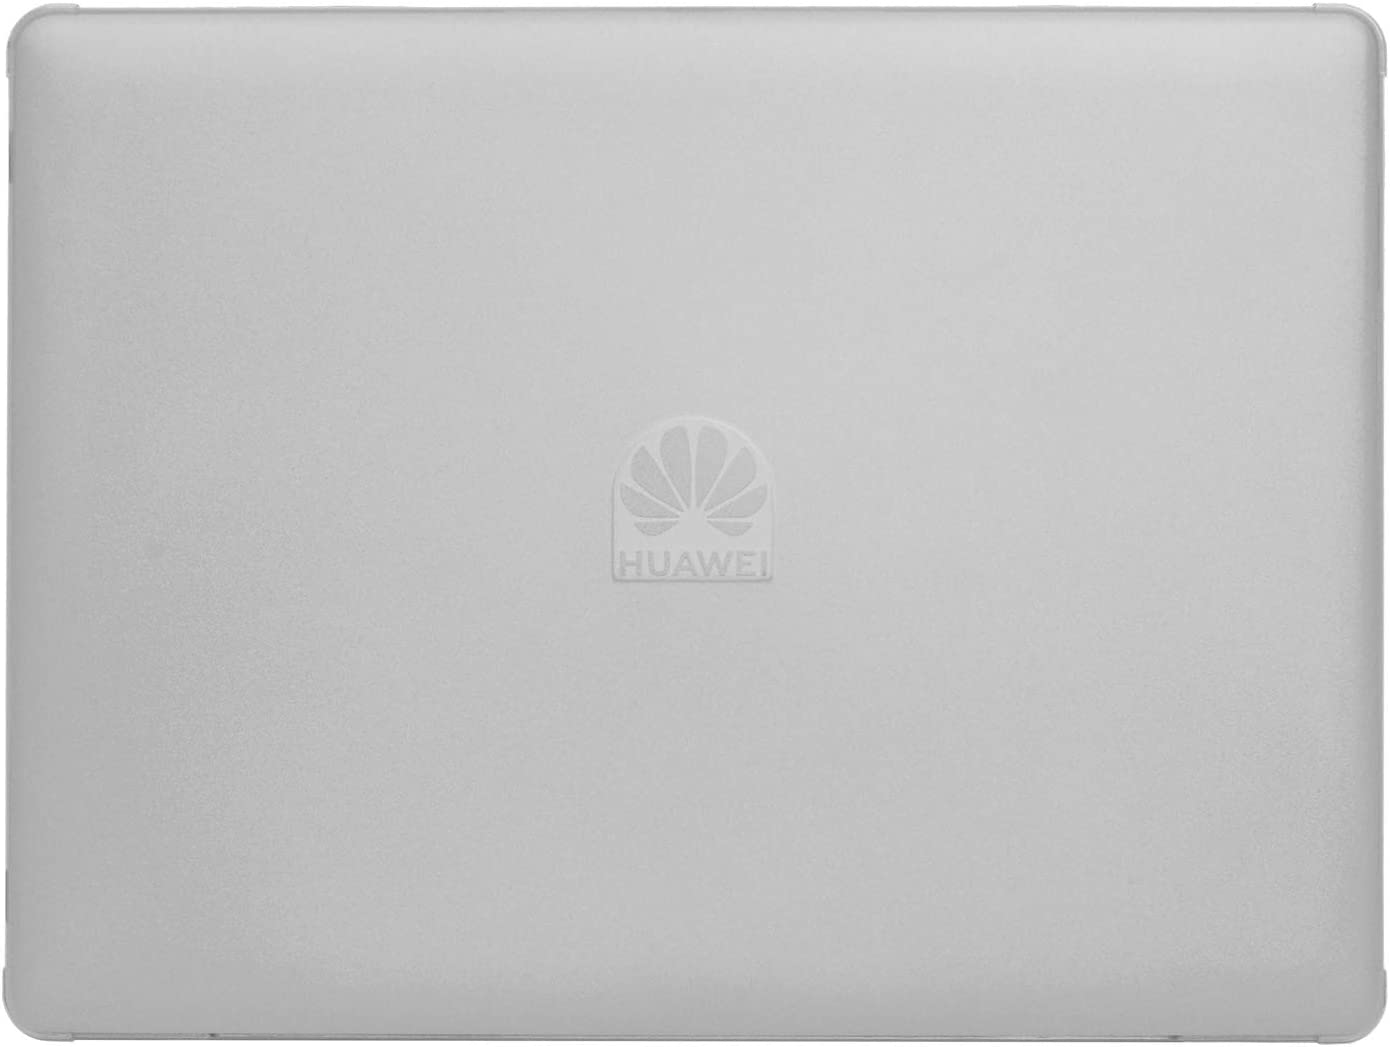 "mCover Hard Shell Case for Late-2018 13"" Huawei MateBook 13 Series Laptop (HW-MateBook13 Clear)"